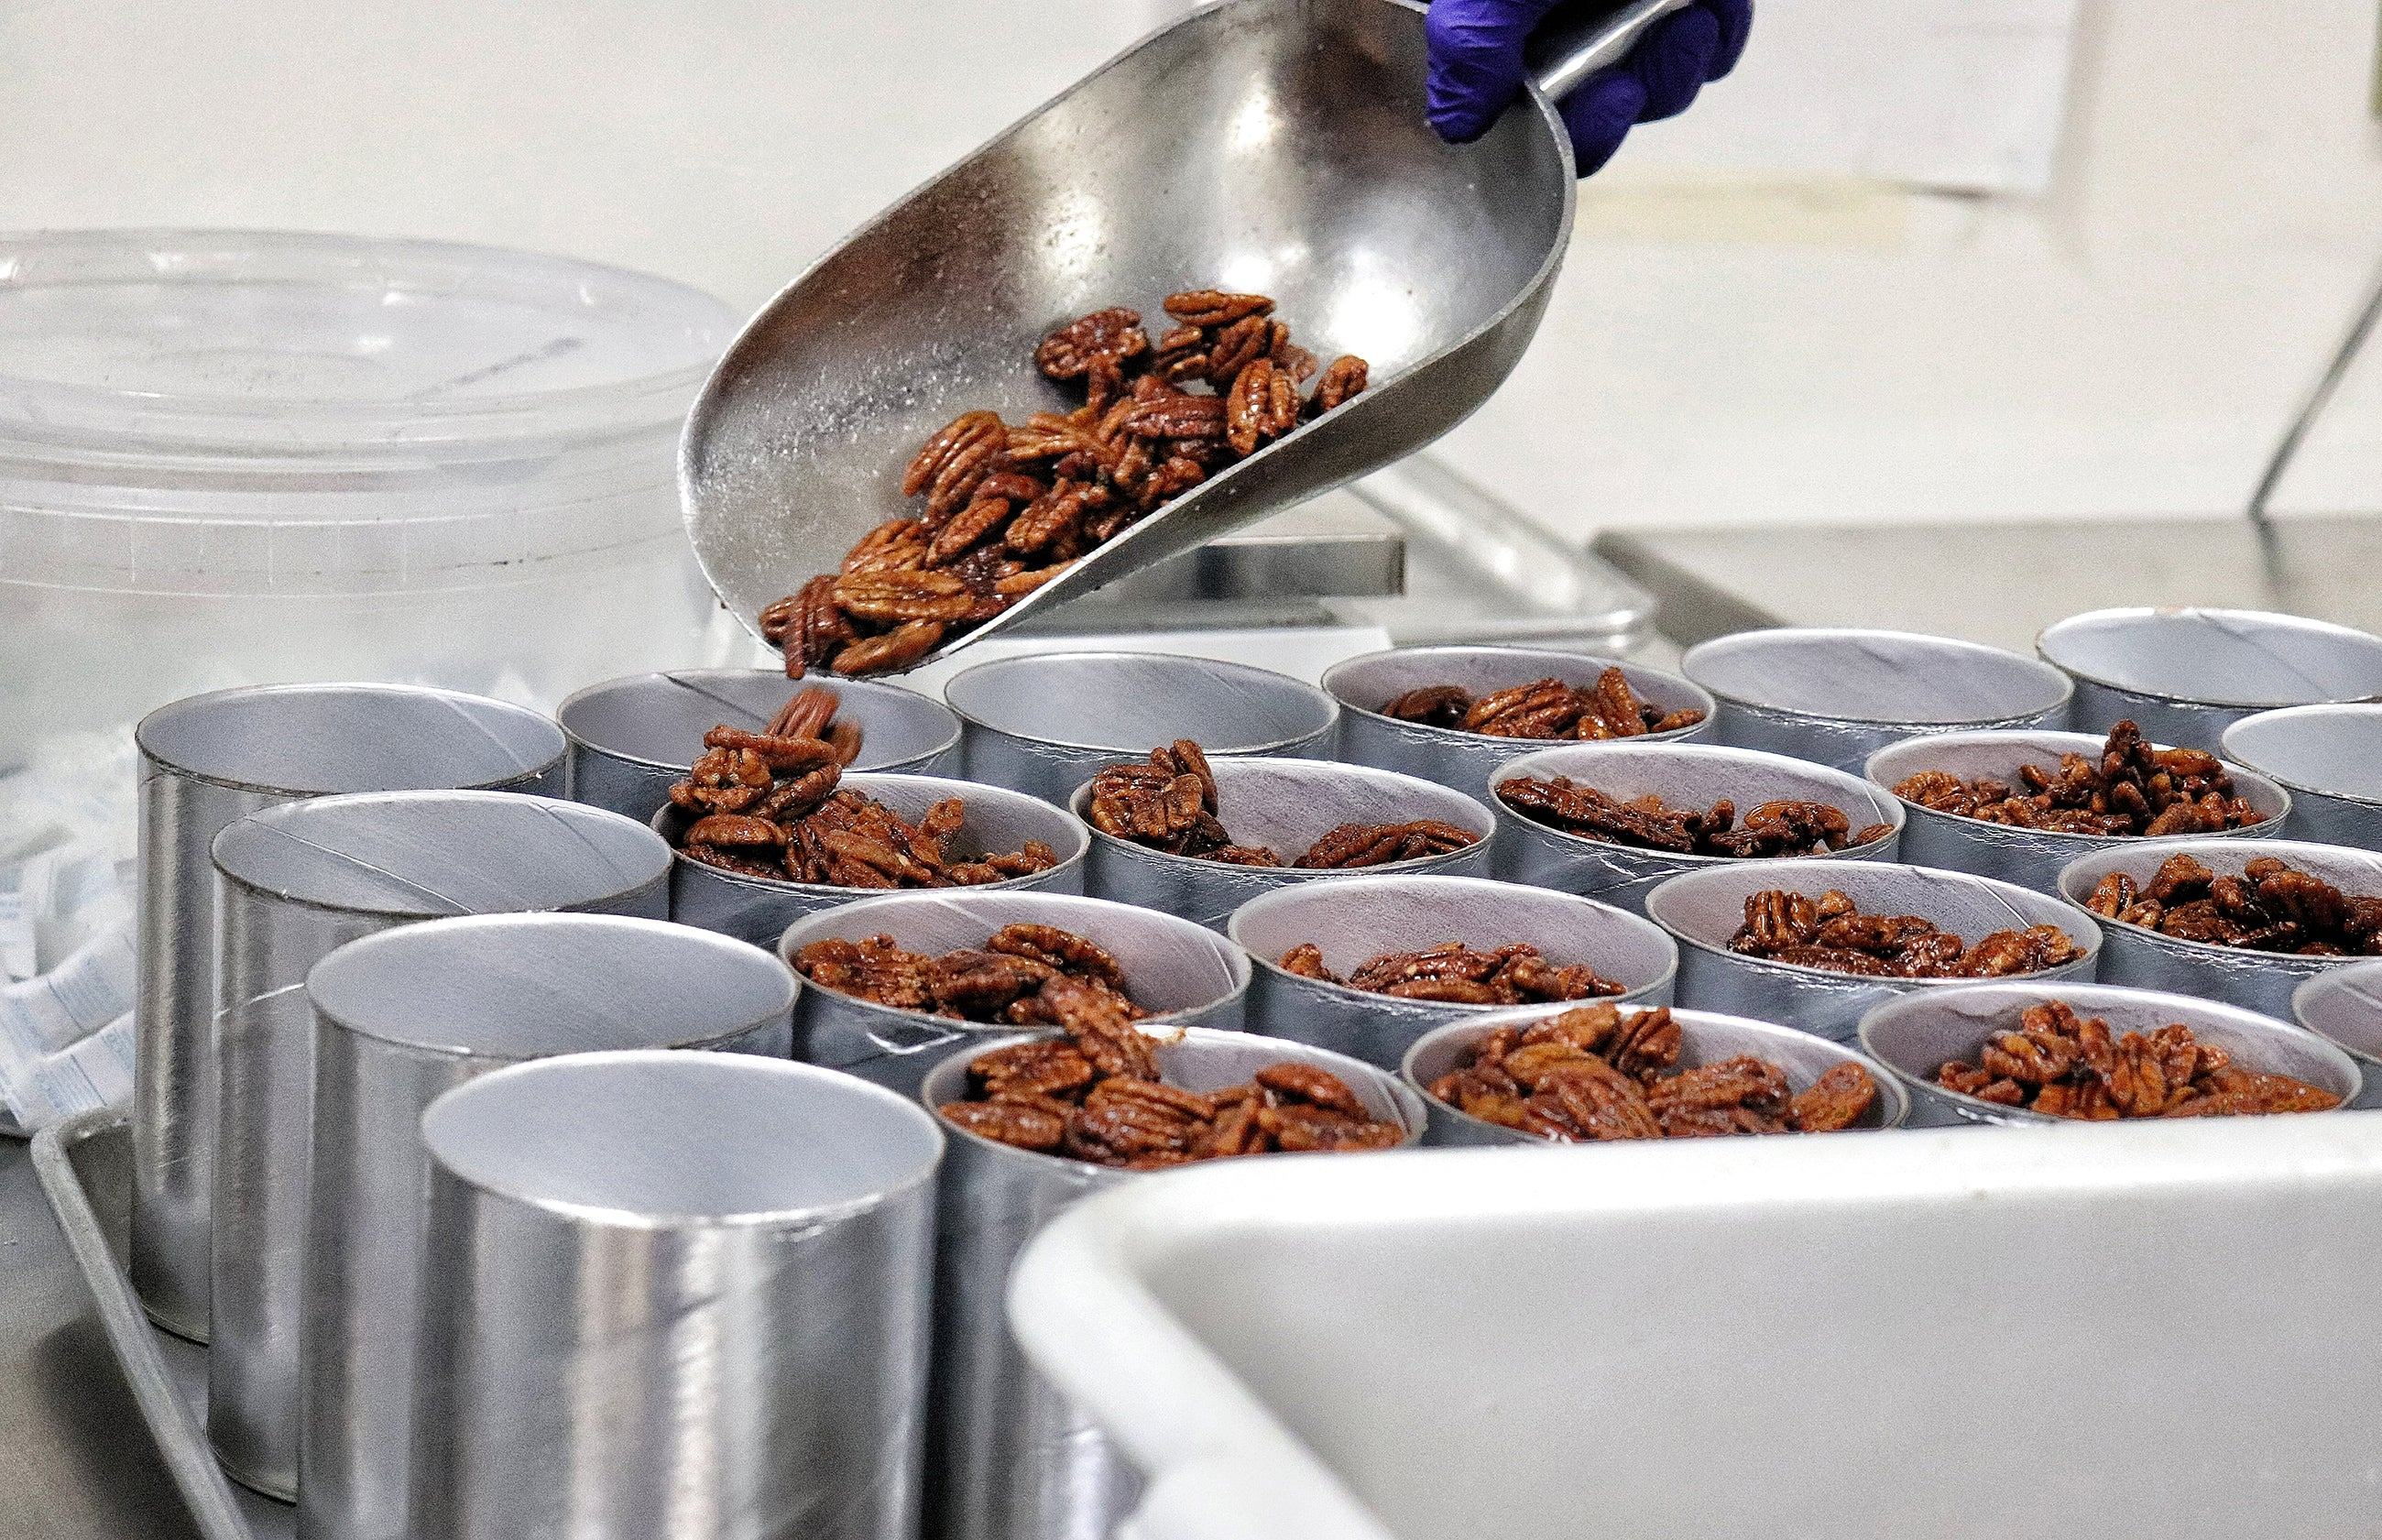 Nutkrack pecans being scooped into cans